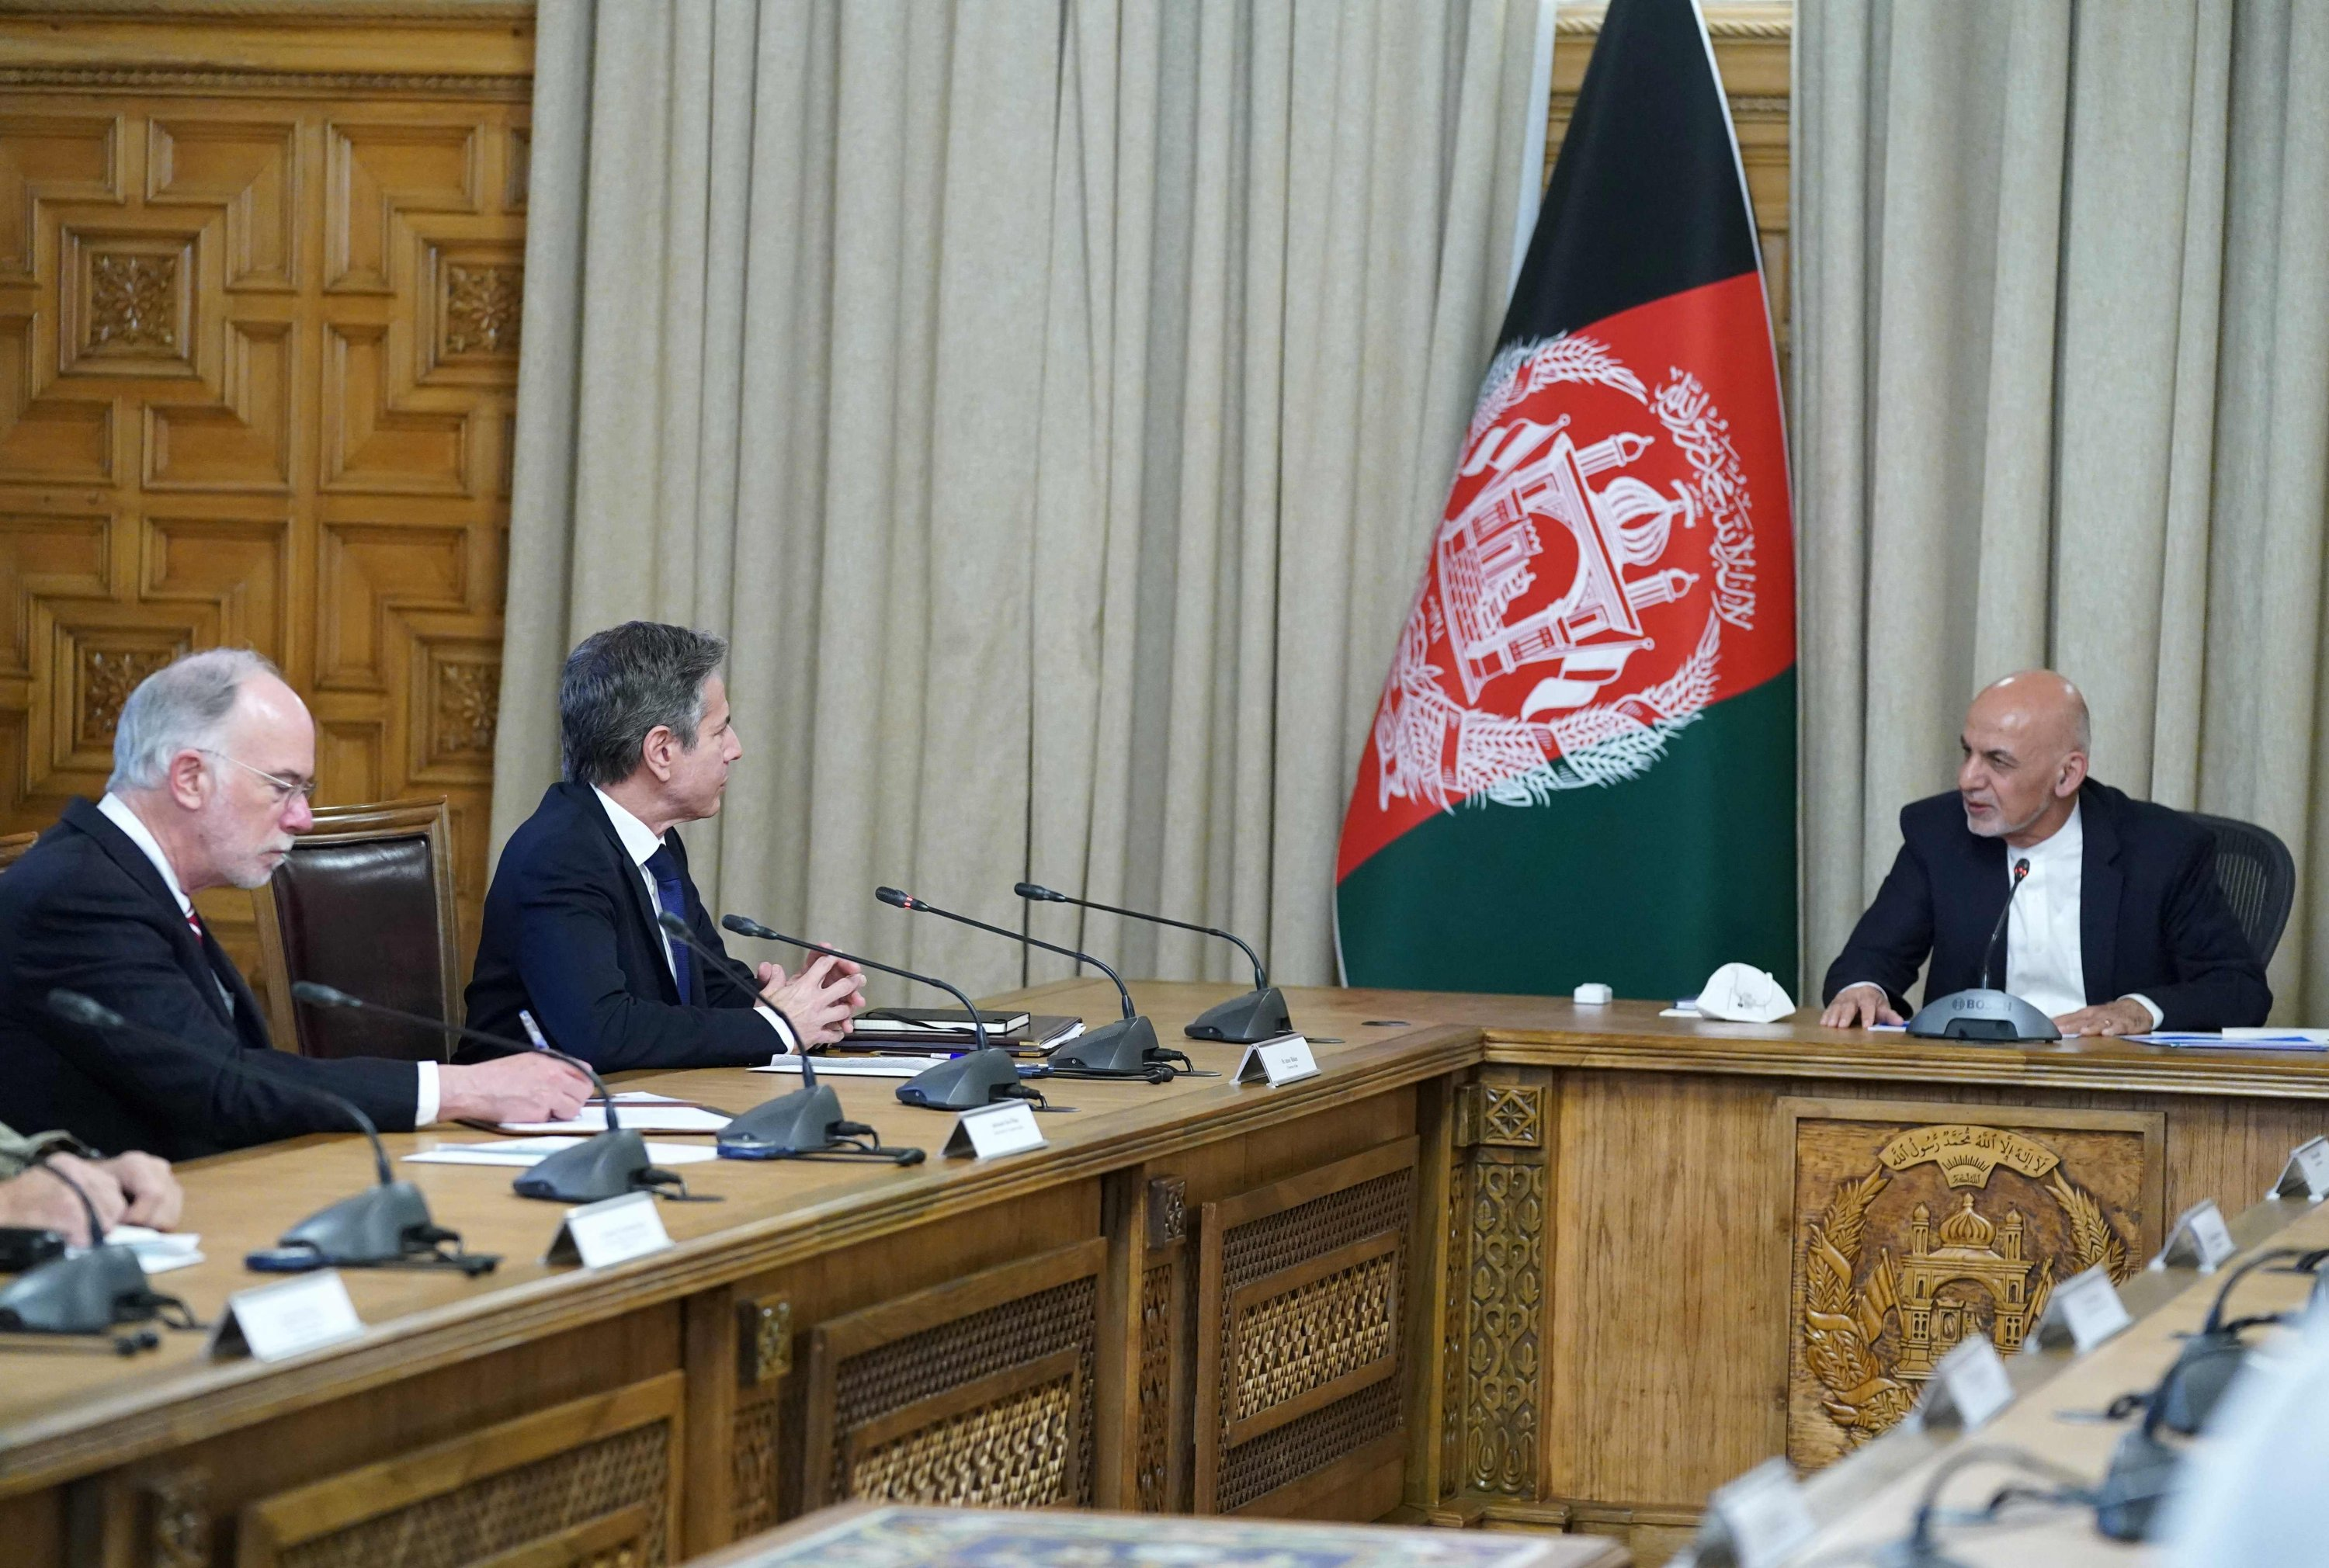 This photo released by the Press office of the president of Afghanistan shows U.S Secretary Antony Blinken (2L) with Afghan President Ashraf Ghani (R), in Kabul, Afghanistan, April 15, 2021 (Afghan Presidential Palace/AFP Photo)